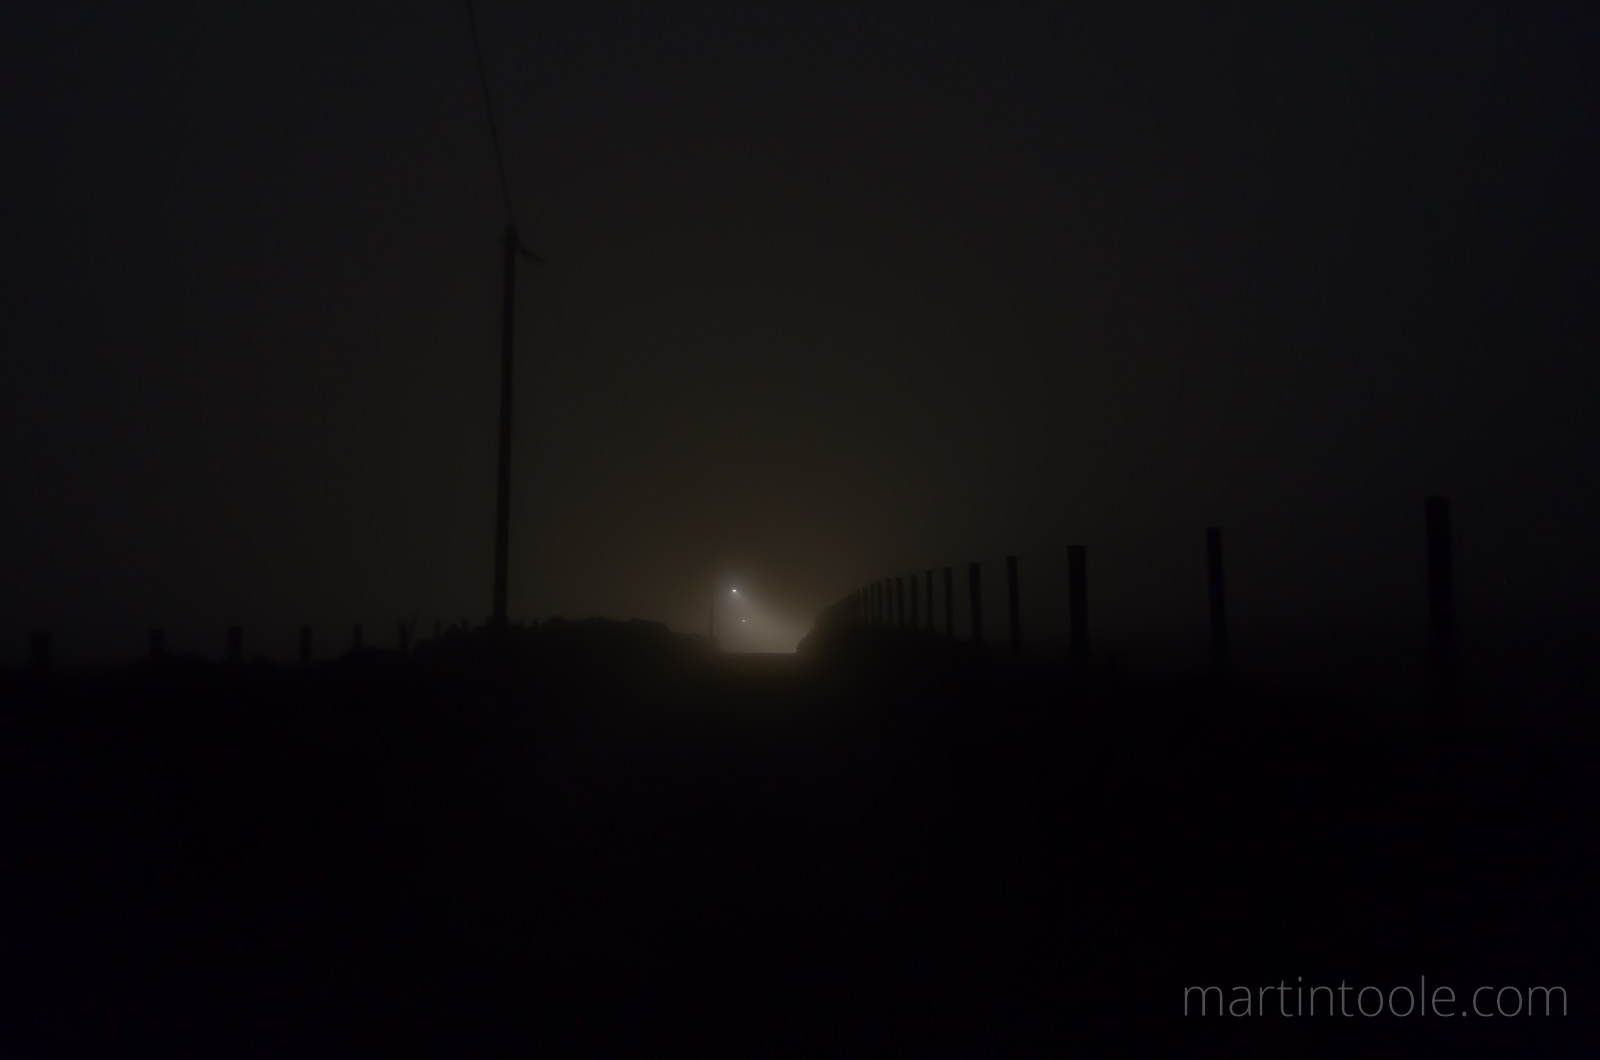 eery country lane at night in the clouds